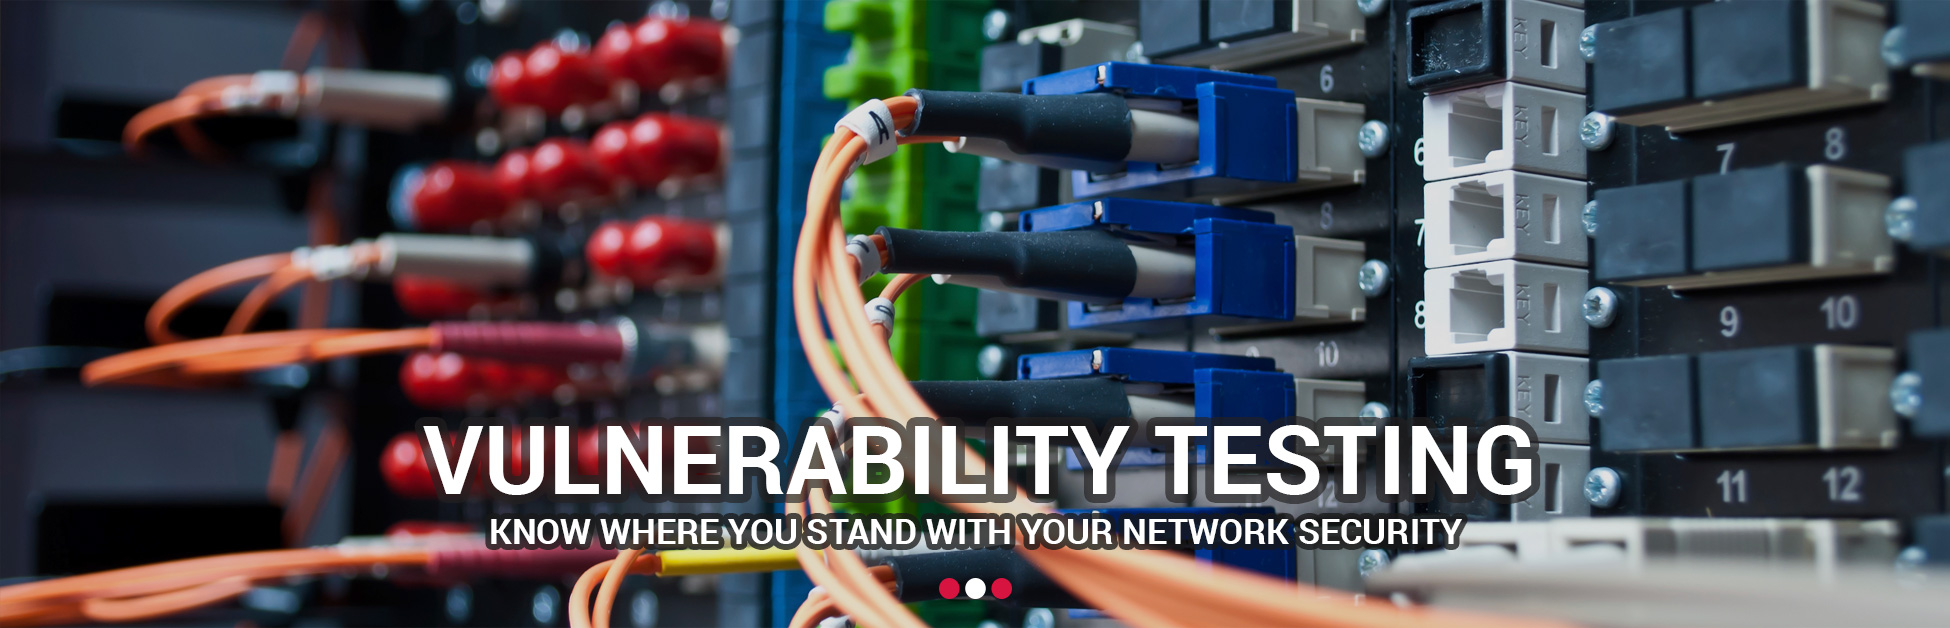 Vulnerability Testing - Know where you stand with your network secuirty